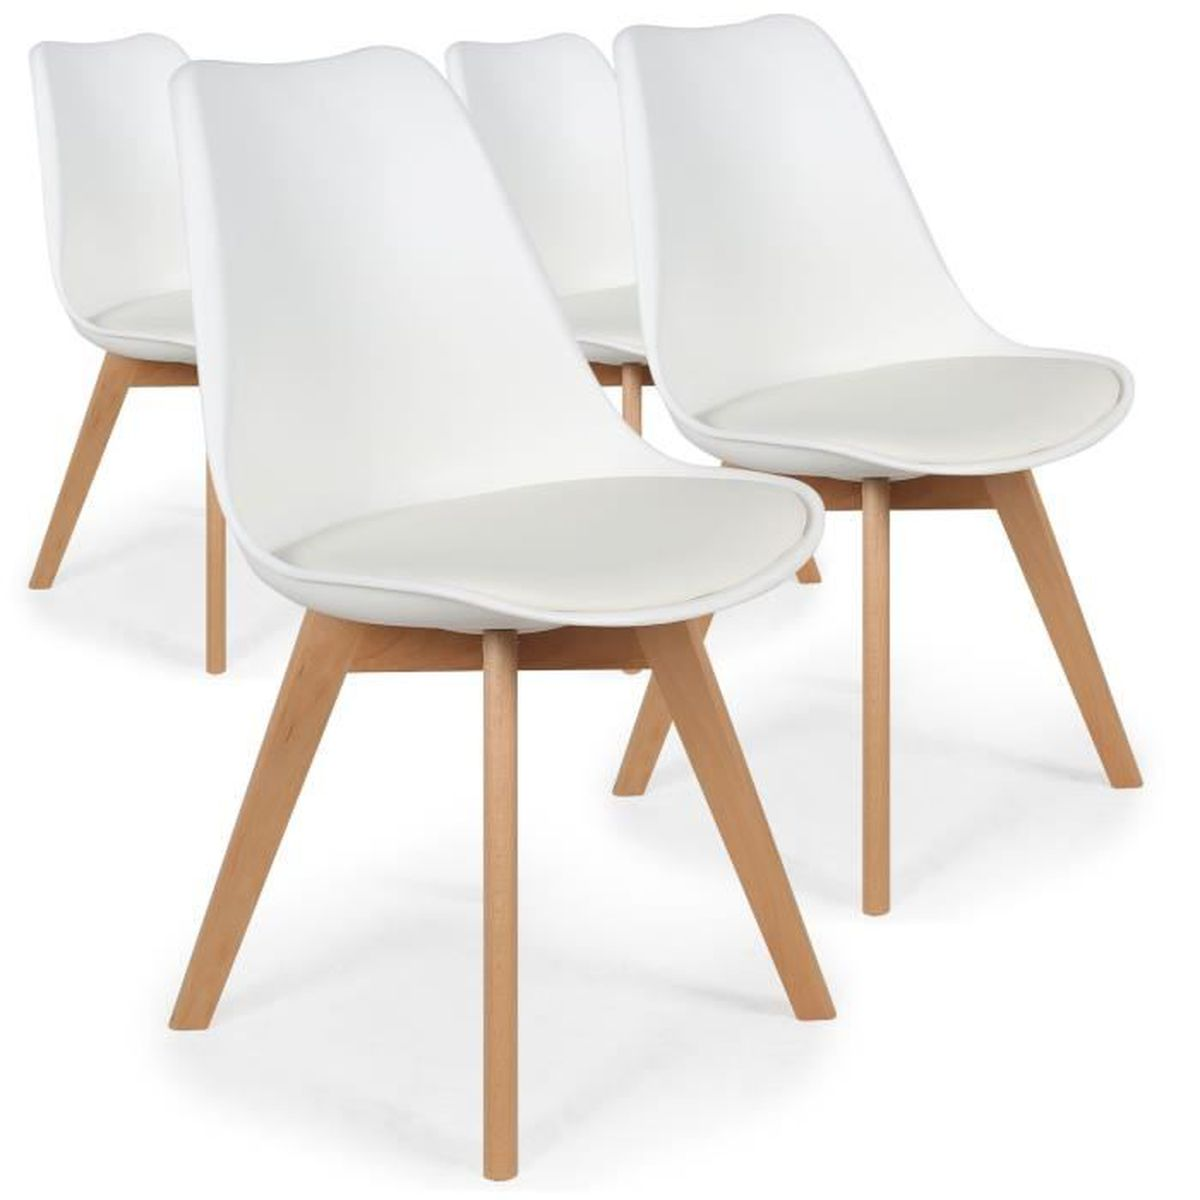 CHAISE Chaise - Lot de 4 chaises style scandinave Bovary